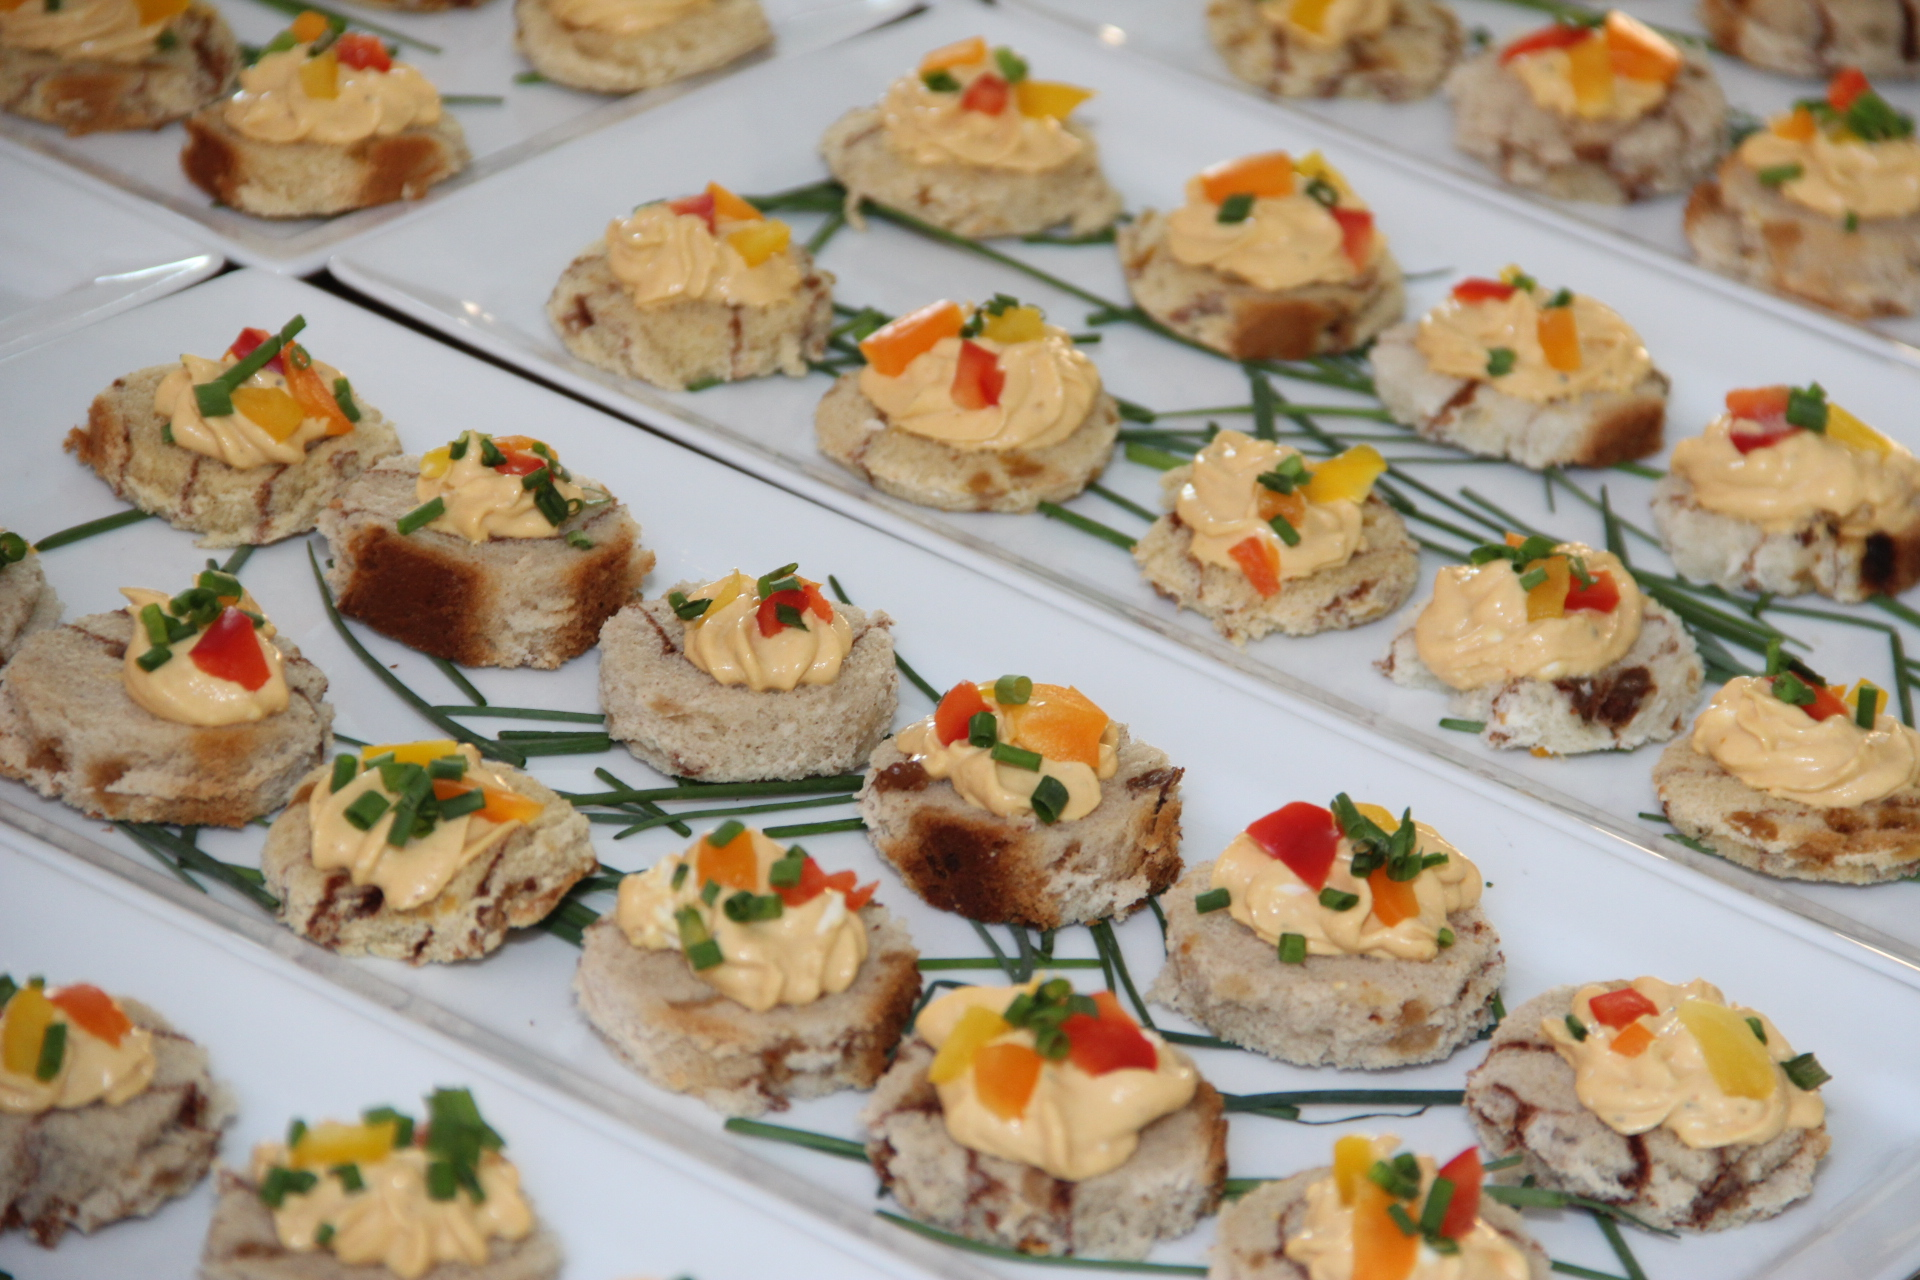 Elegant Affairs, Caterer for Montague Retreat Center